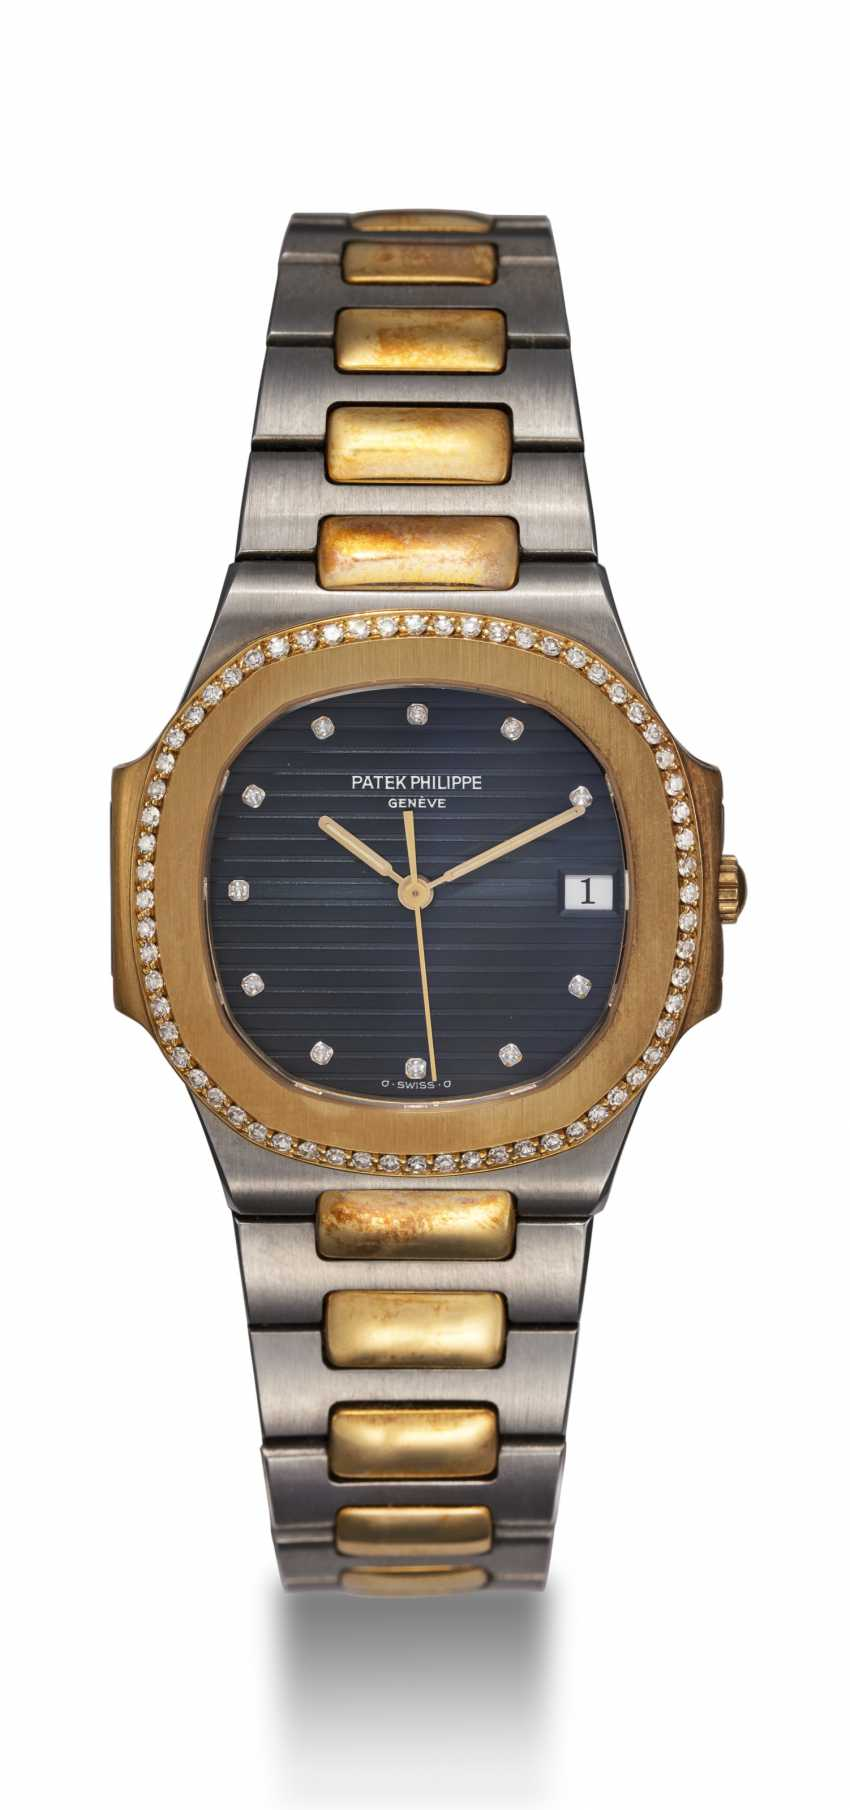 PATEK PHILIPPE, REF. 3900/2, A STEEL AND GOLD NAUTILUS WITH A DIAMOND-SET BEZEL - photo 3